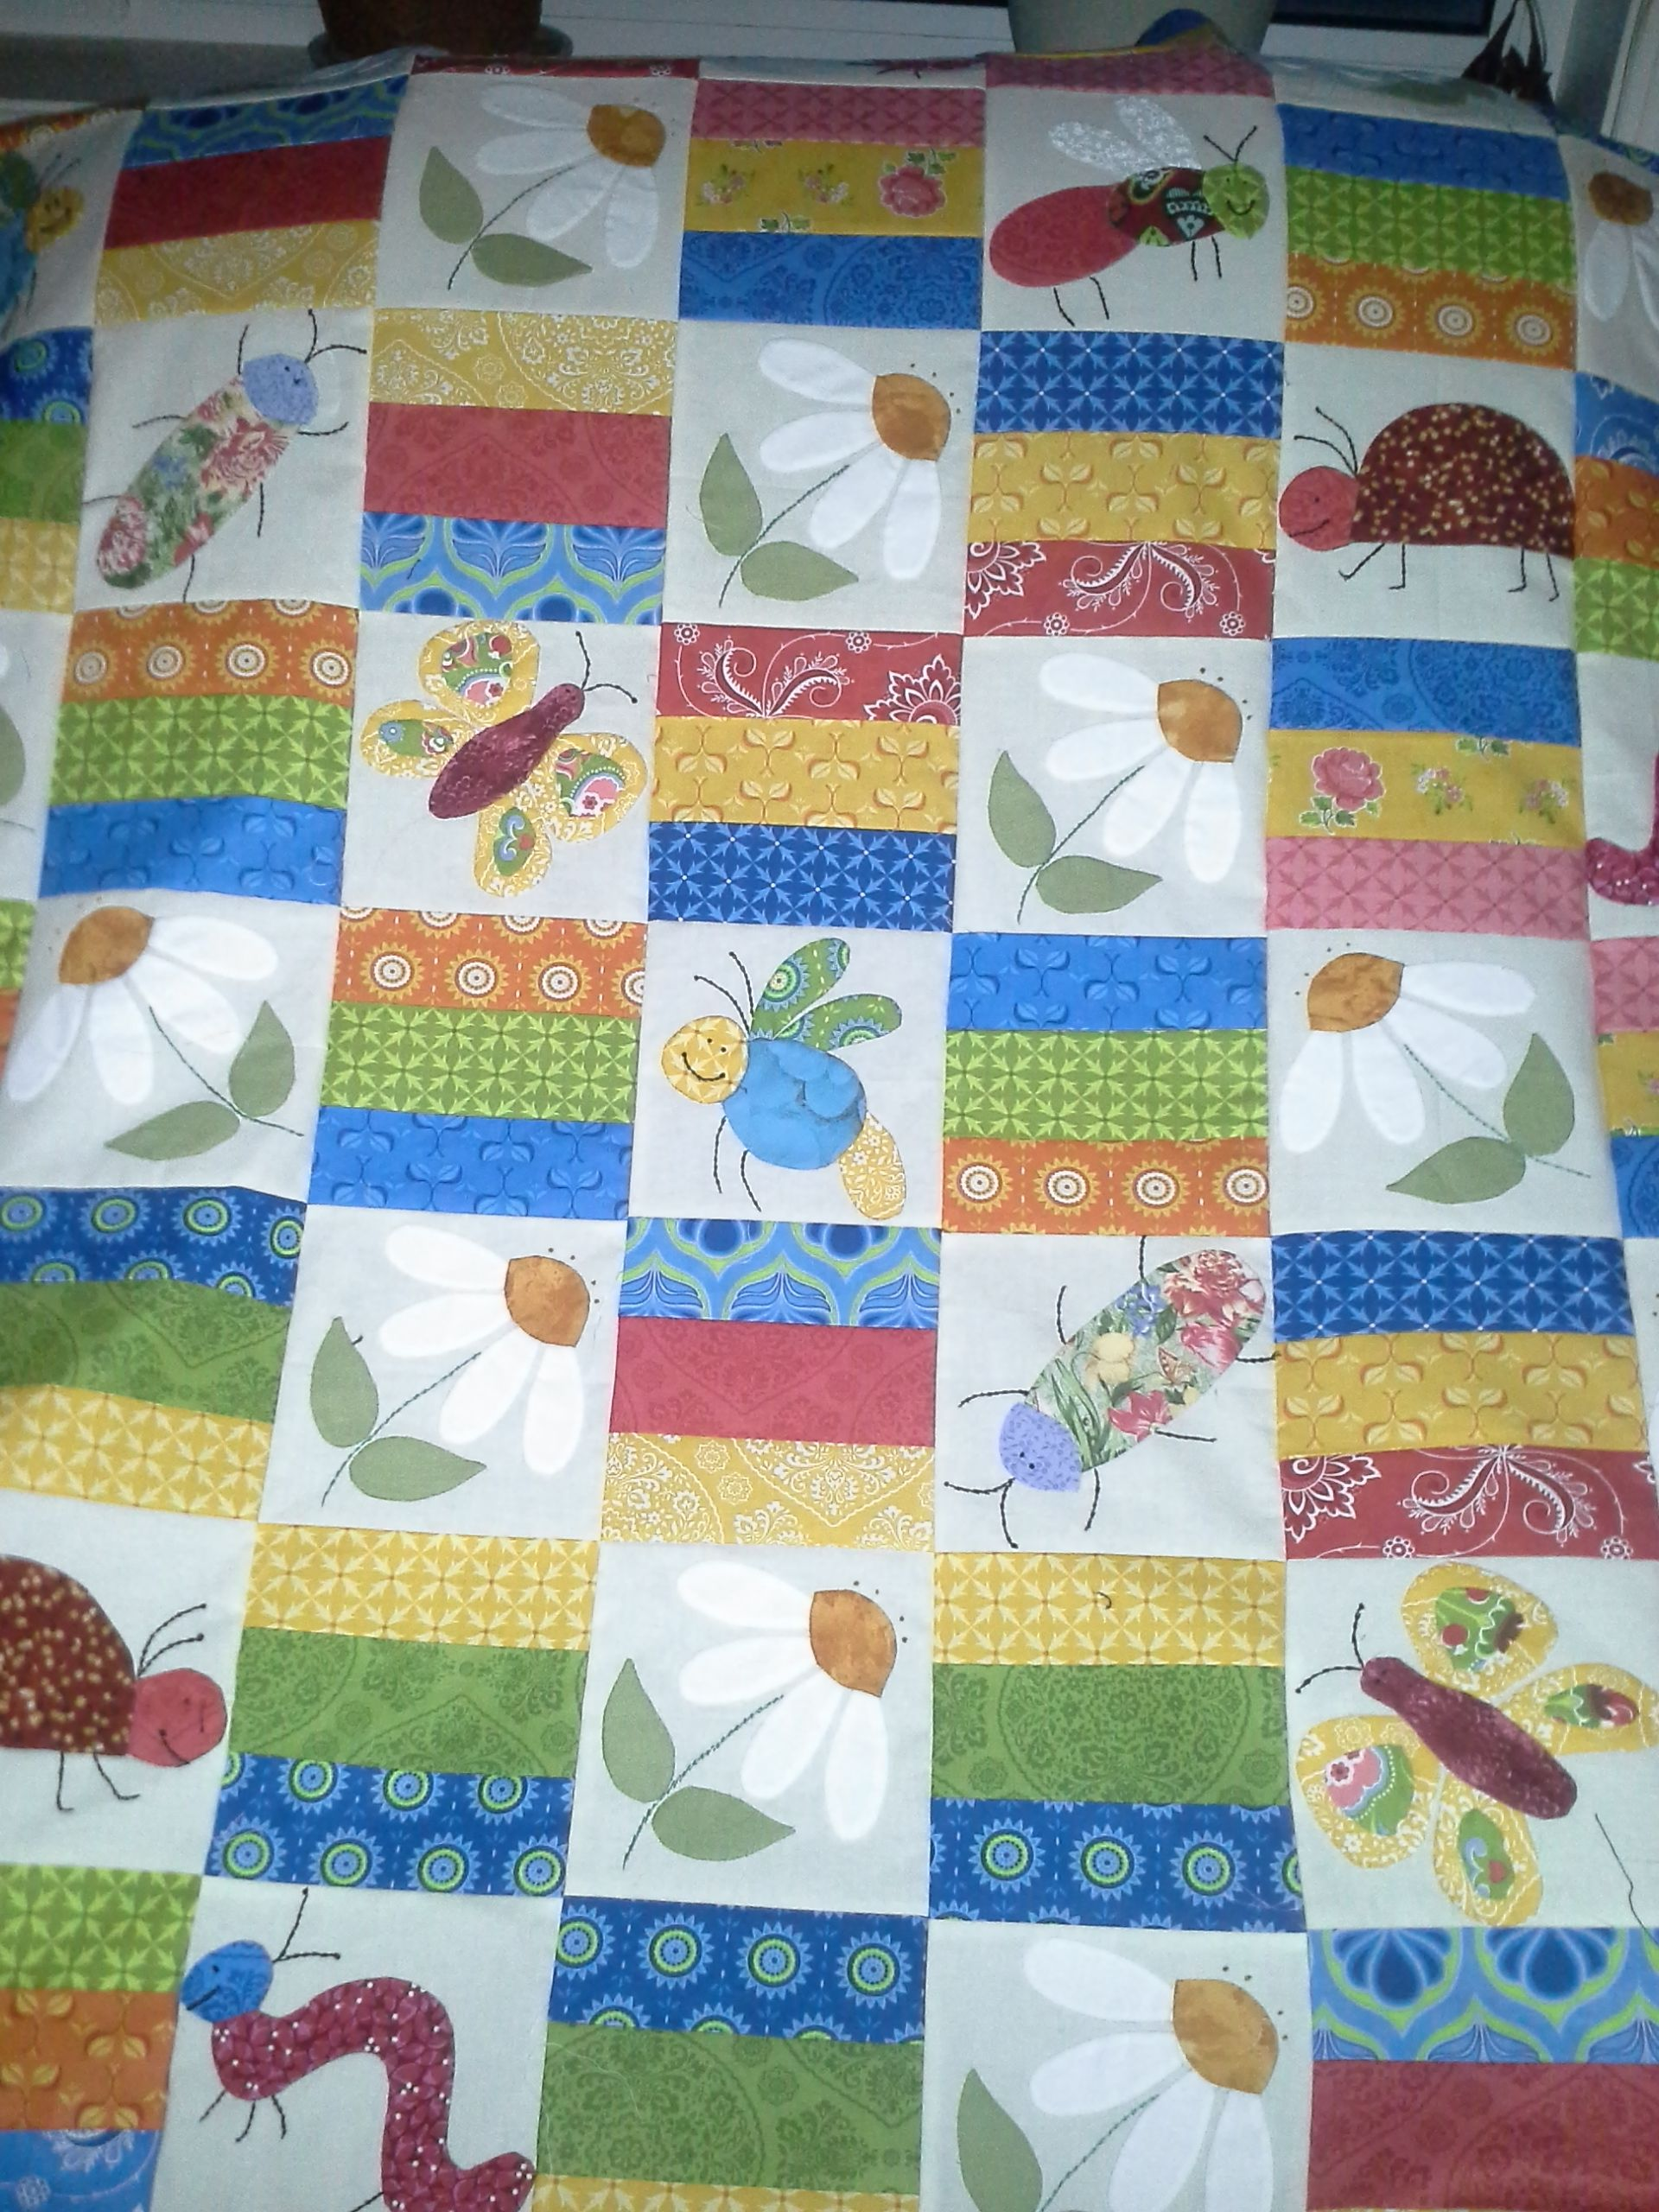 Latest project - yet to be quilted